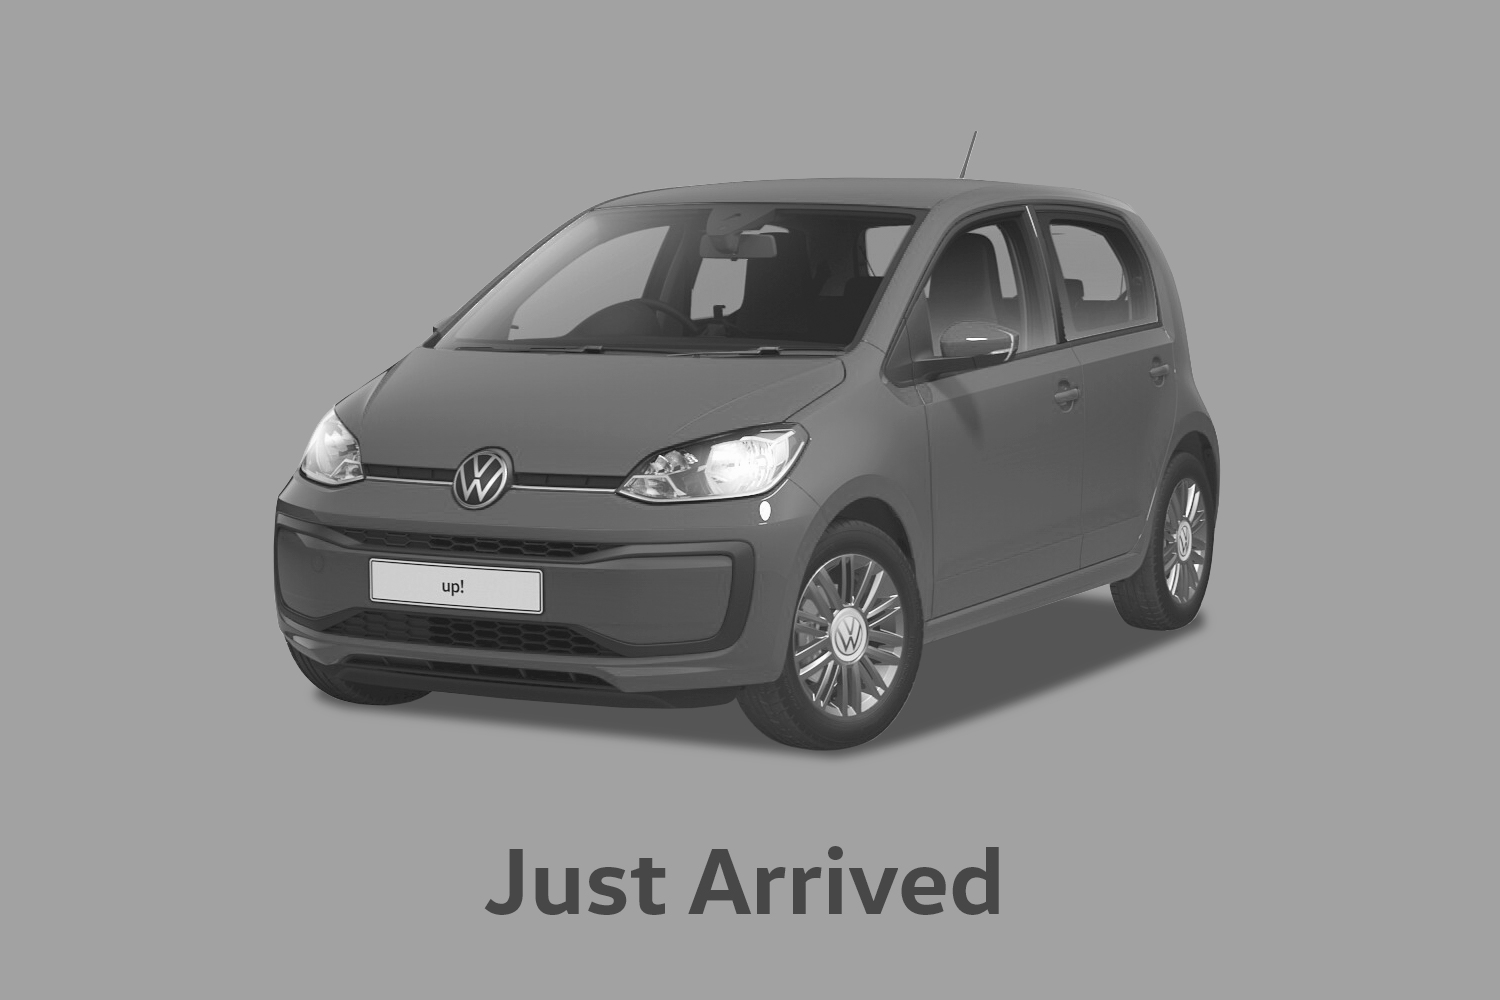 Volkswagen up! 1.0 (60PS) Take up!